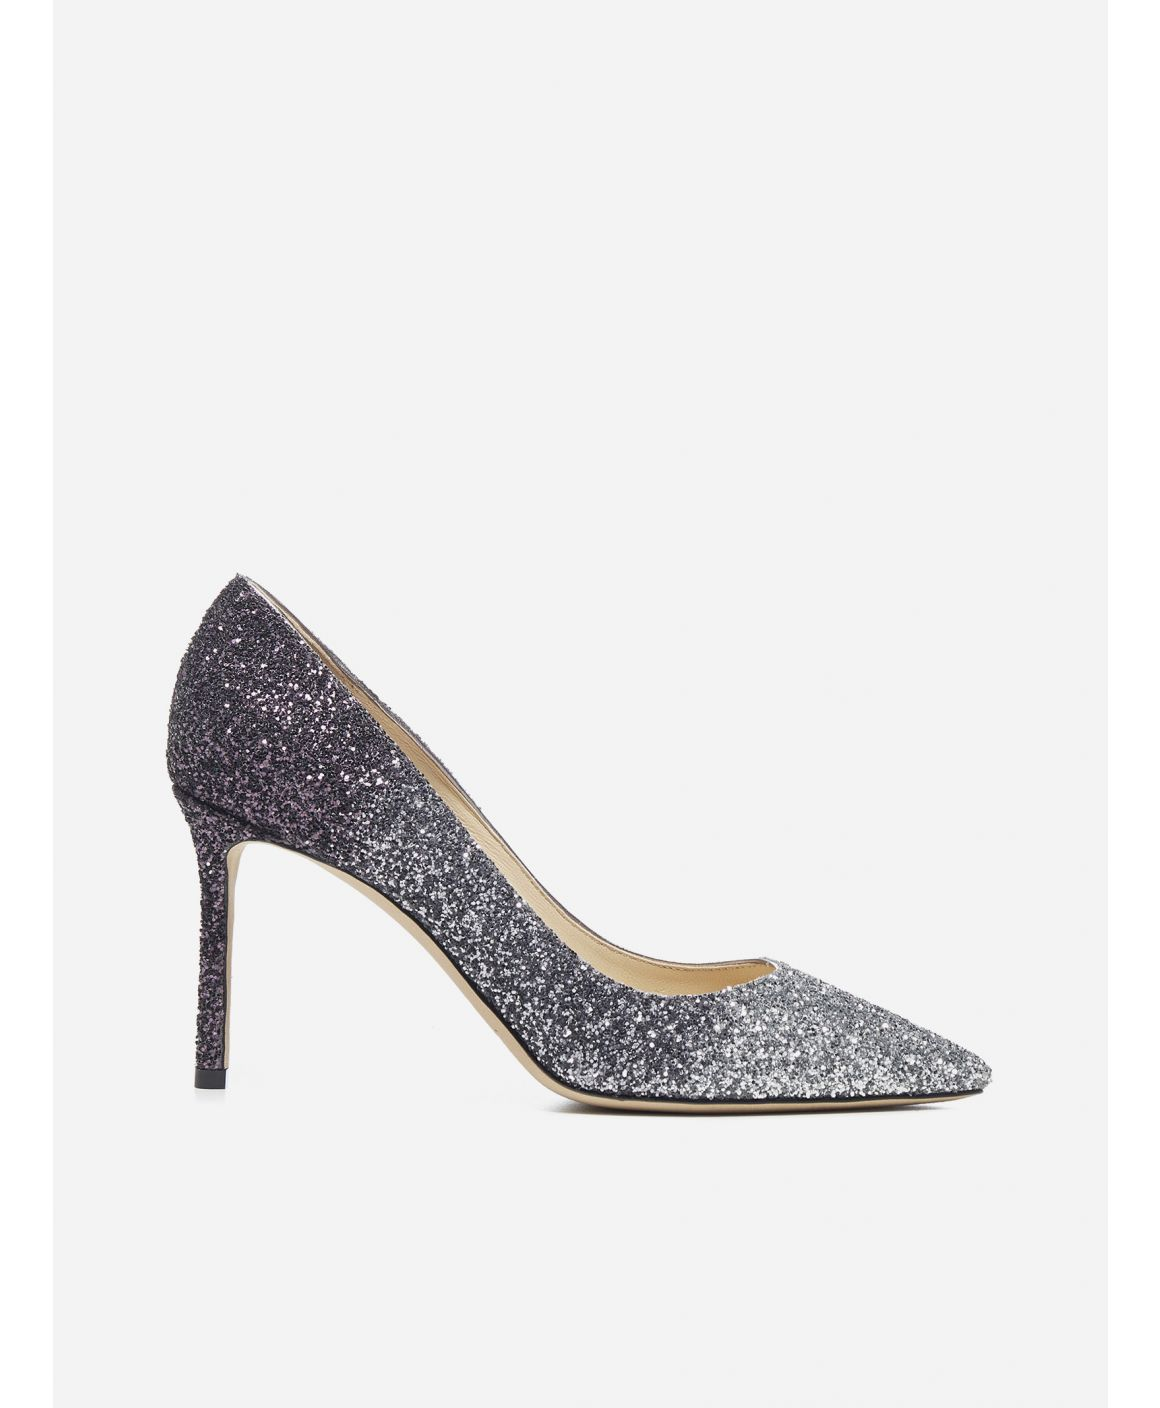 Romy 85 glitter degrade' fabric pumps